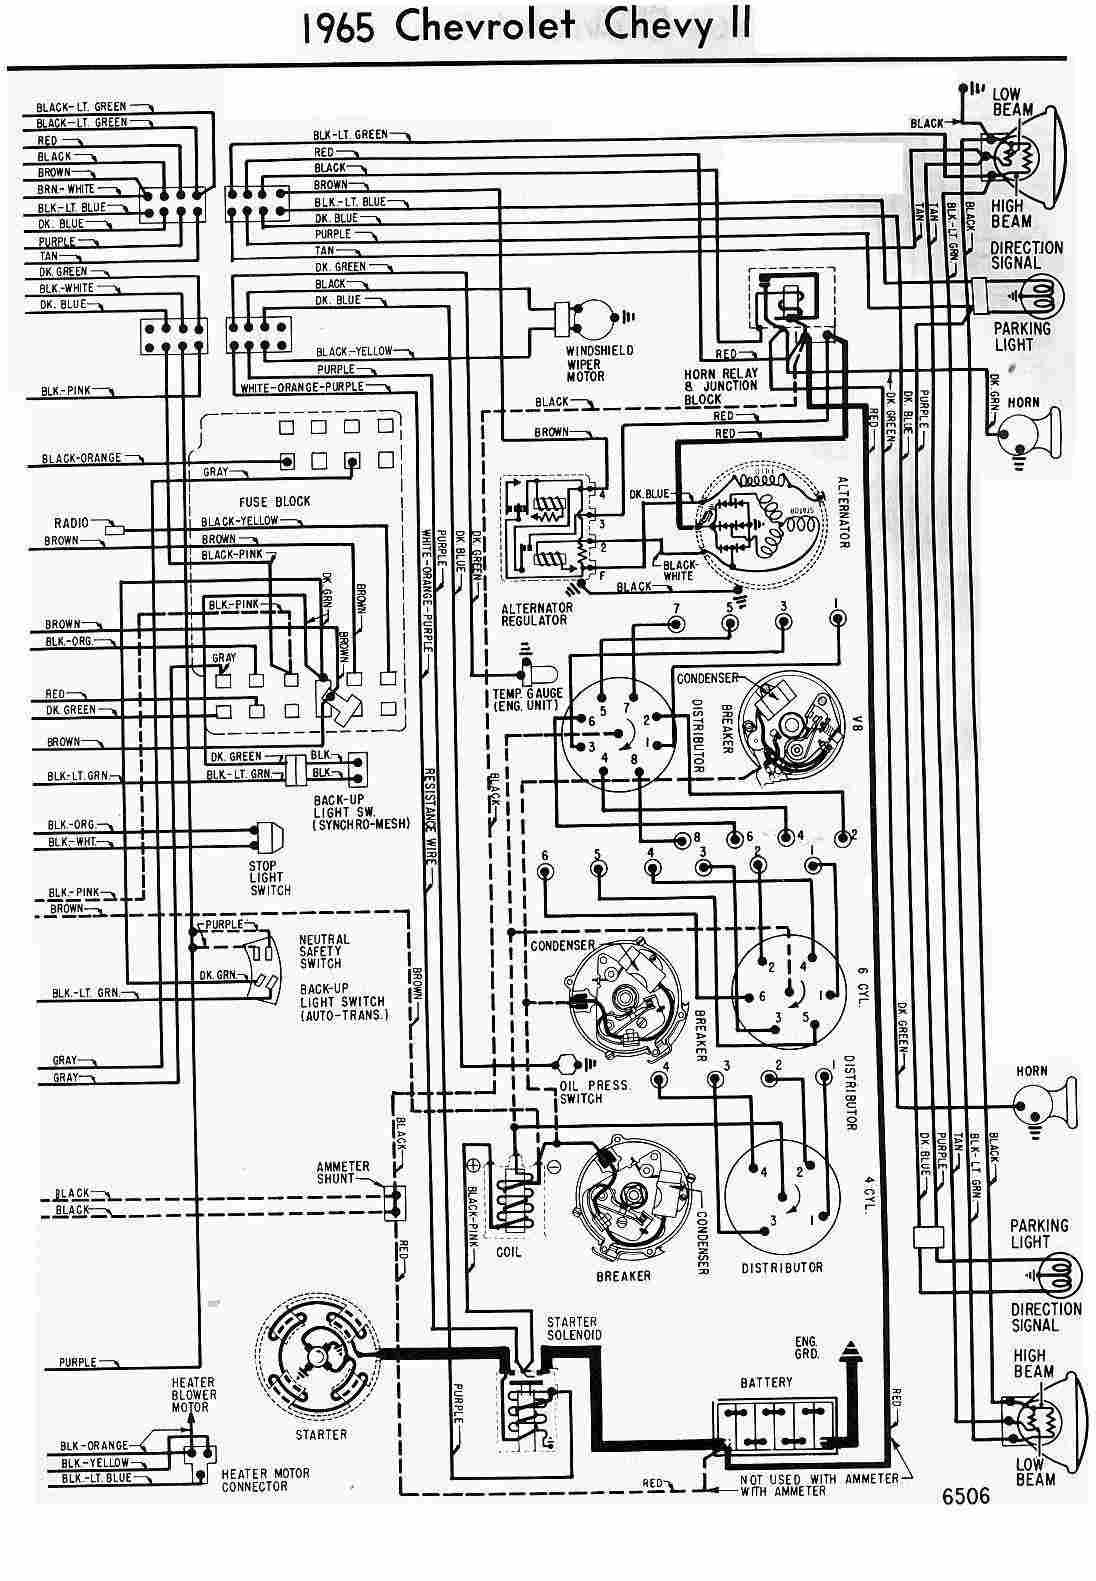 wiring diagram diagram of 1965 chevrolet chevy ii?t=1508393184 chevrolet car manuals, wiring diagrams pdf & fault codes  at honlapkeszites.co